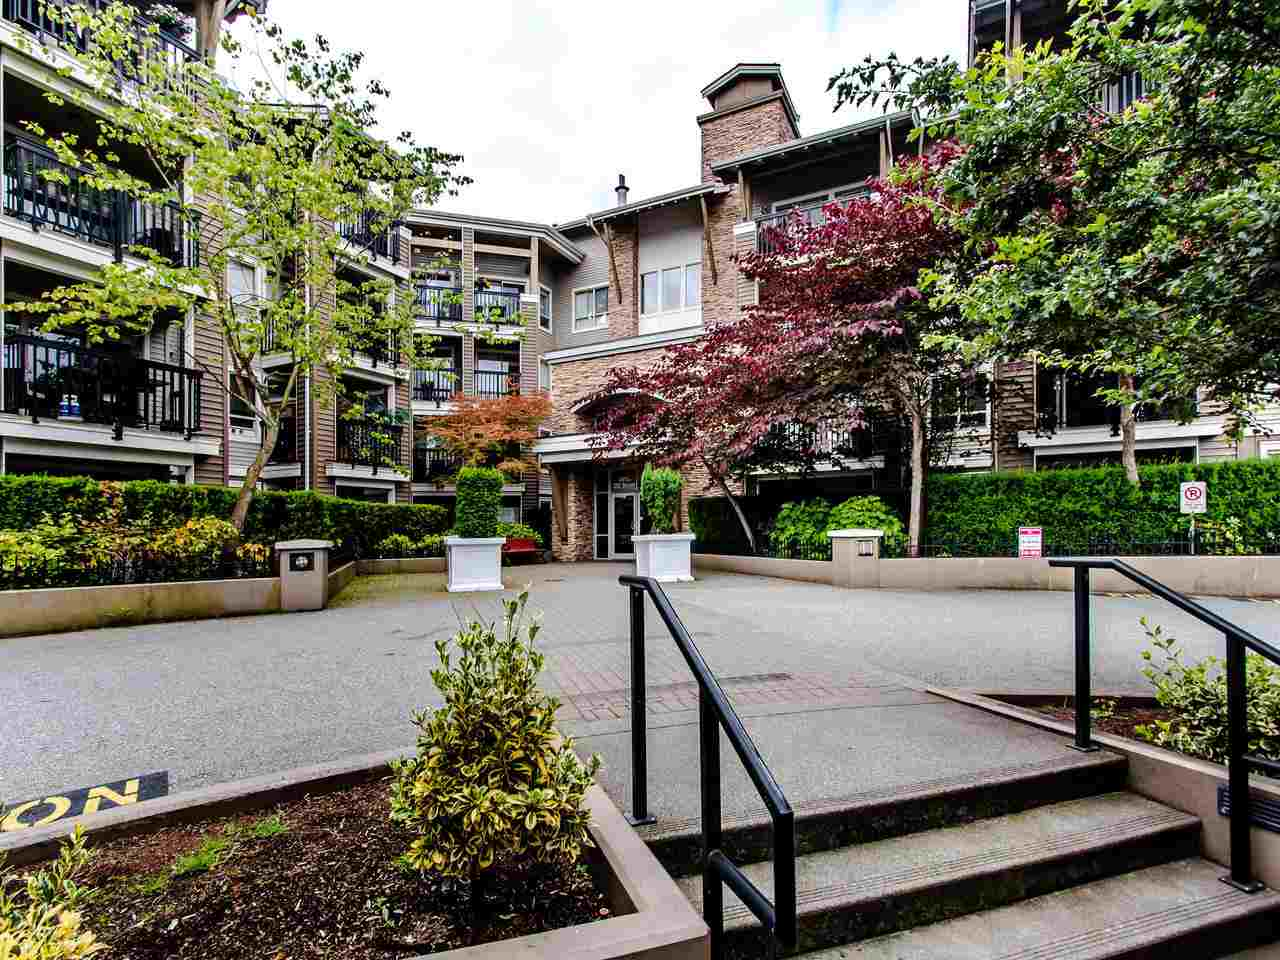 127 8915 202 STREET - Walnut Grove Apartment/Condo for sale, 2 Bedrooms (R2474456) - #1